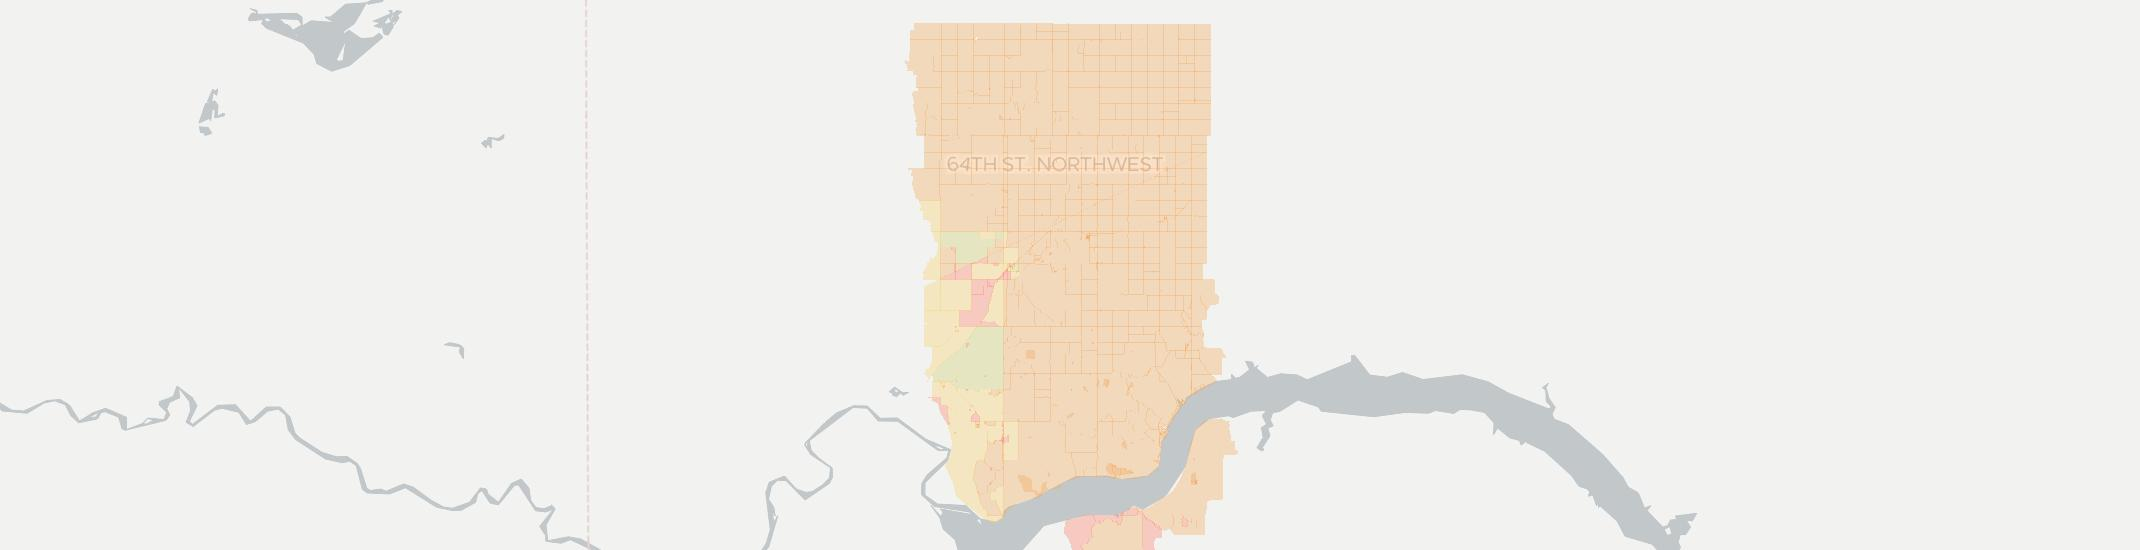 Epping Internet Competition Map. Click for interactive map.